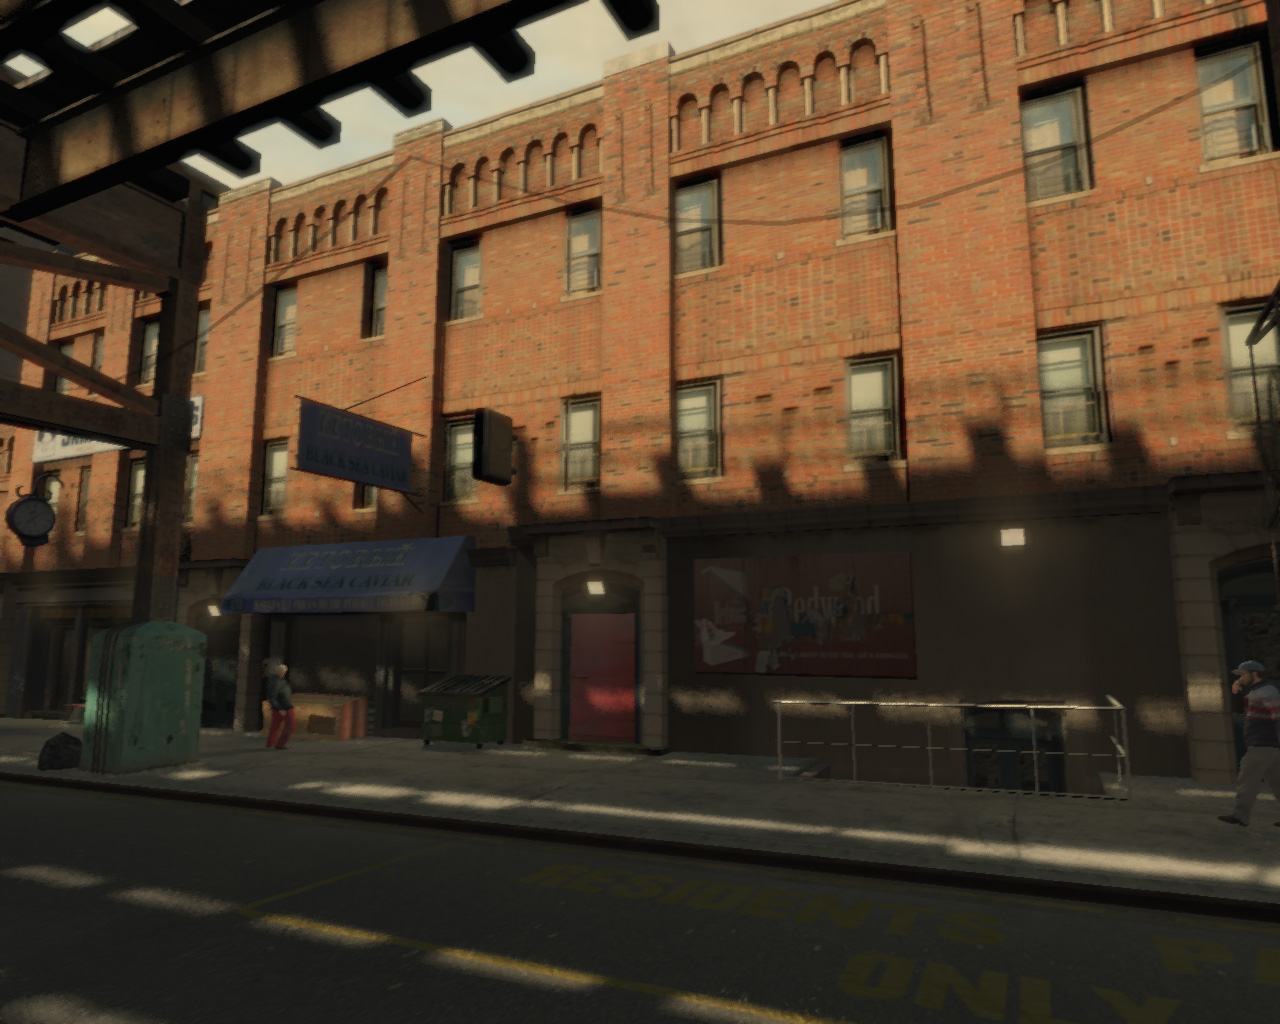 Safehouses In Gta Iv Gta Wiki The Grand Theft Auto Wiki Gta Iv San Andreas Vice City